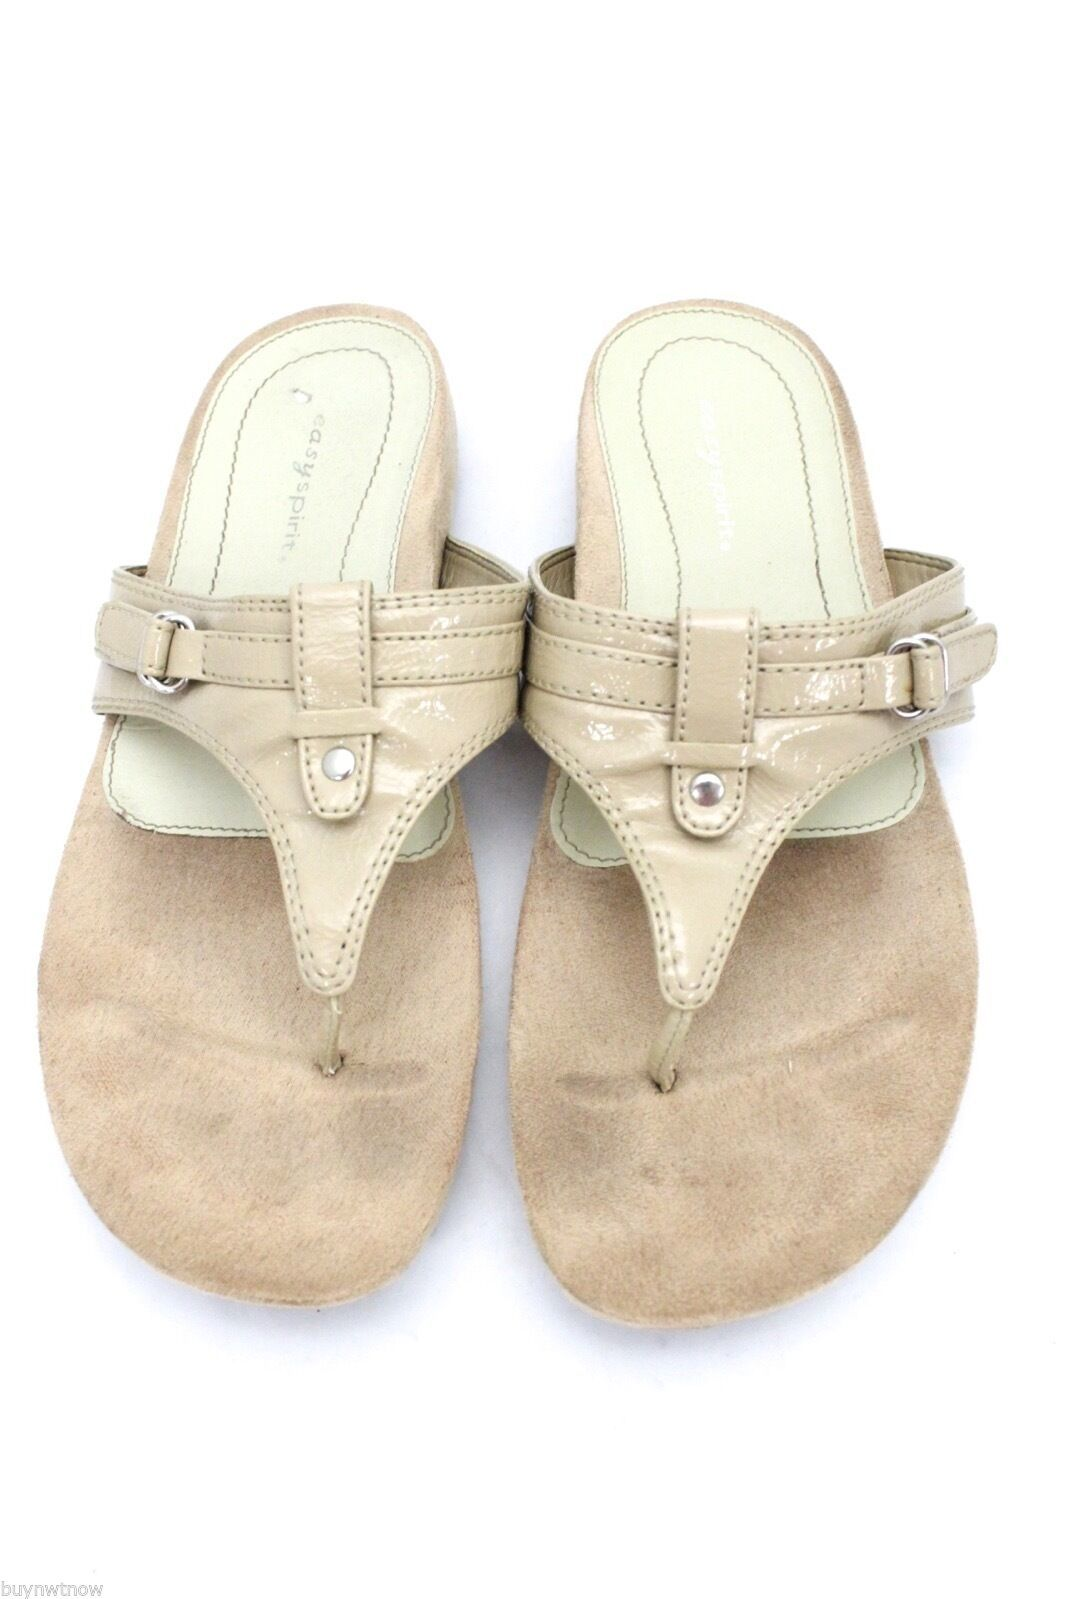 Easy Spirit Nude Patent Thong Sandals Flats 9M Geordie Flip Flop image 1